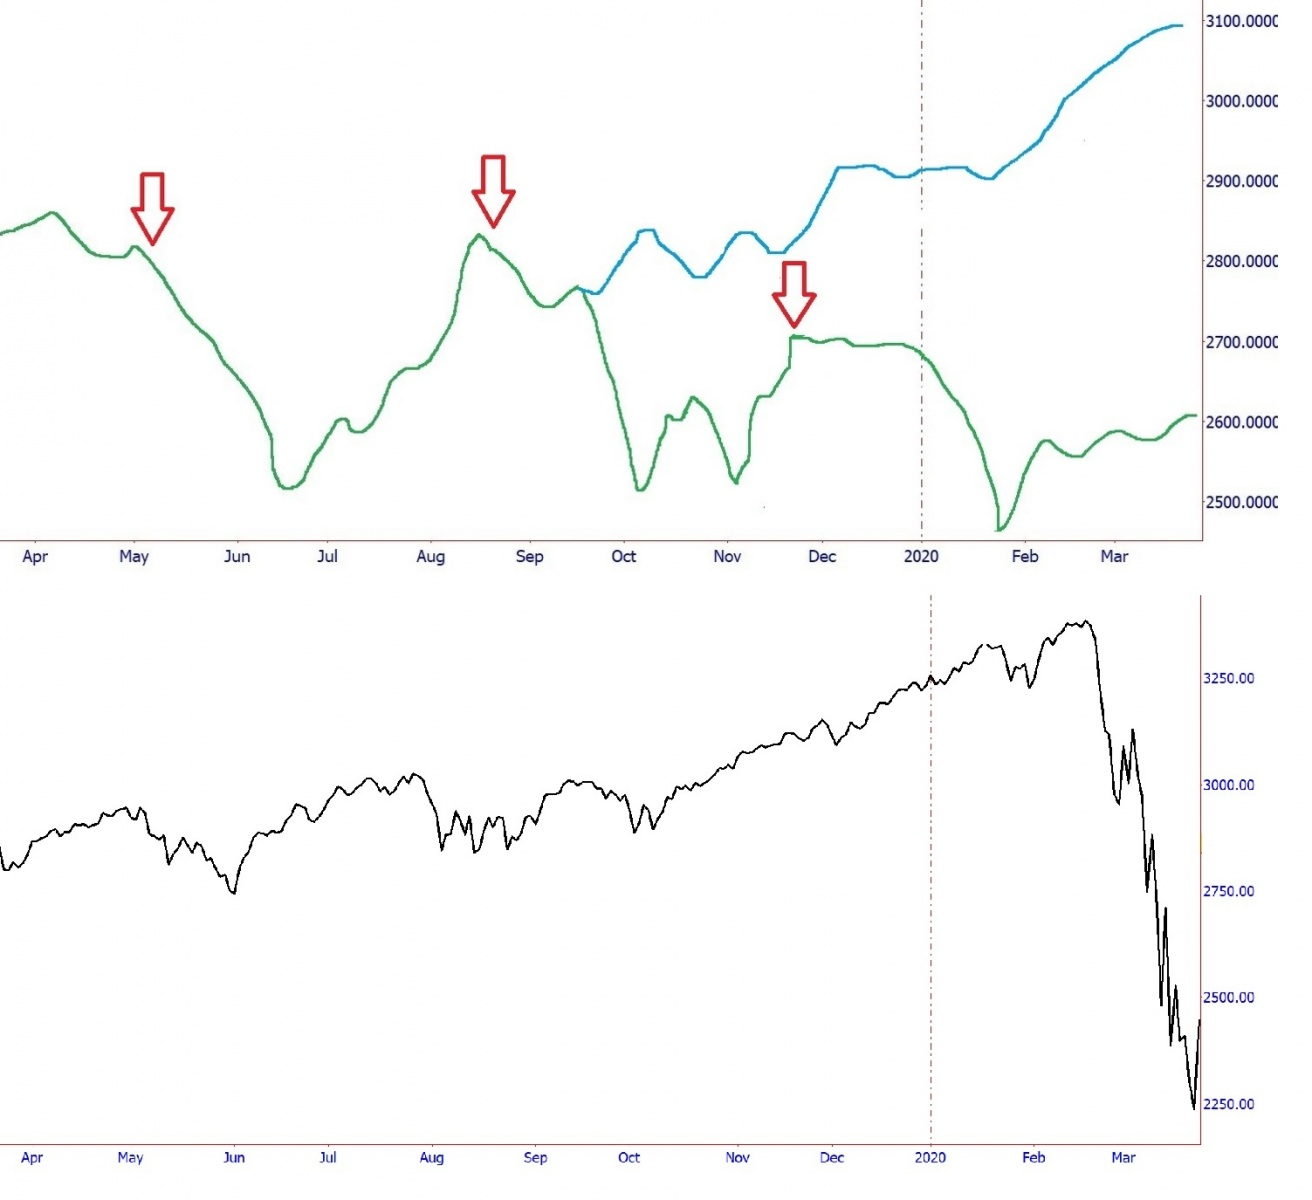 2019-SP-500-Forecast-Line-VS-Actual